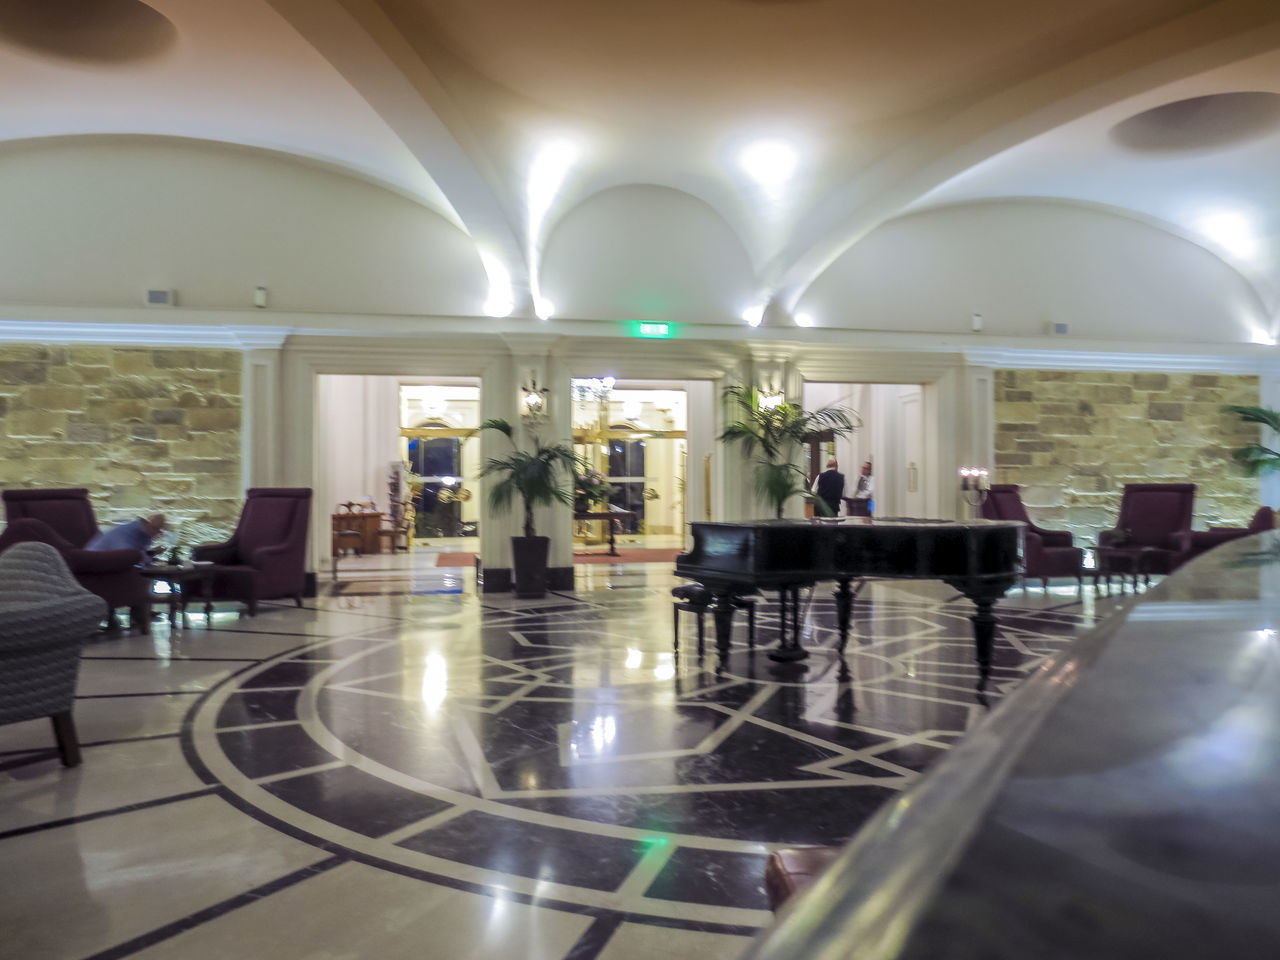 indoors, arch, ceiling, architecture, travel, chair, luxury, illuminated, architectural column, luxury hotel, seat, built structure, real people, modern, day